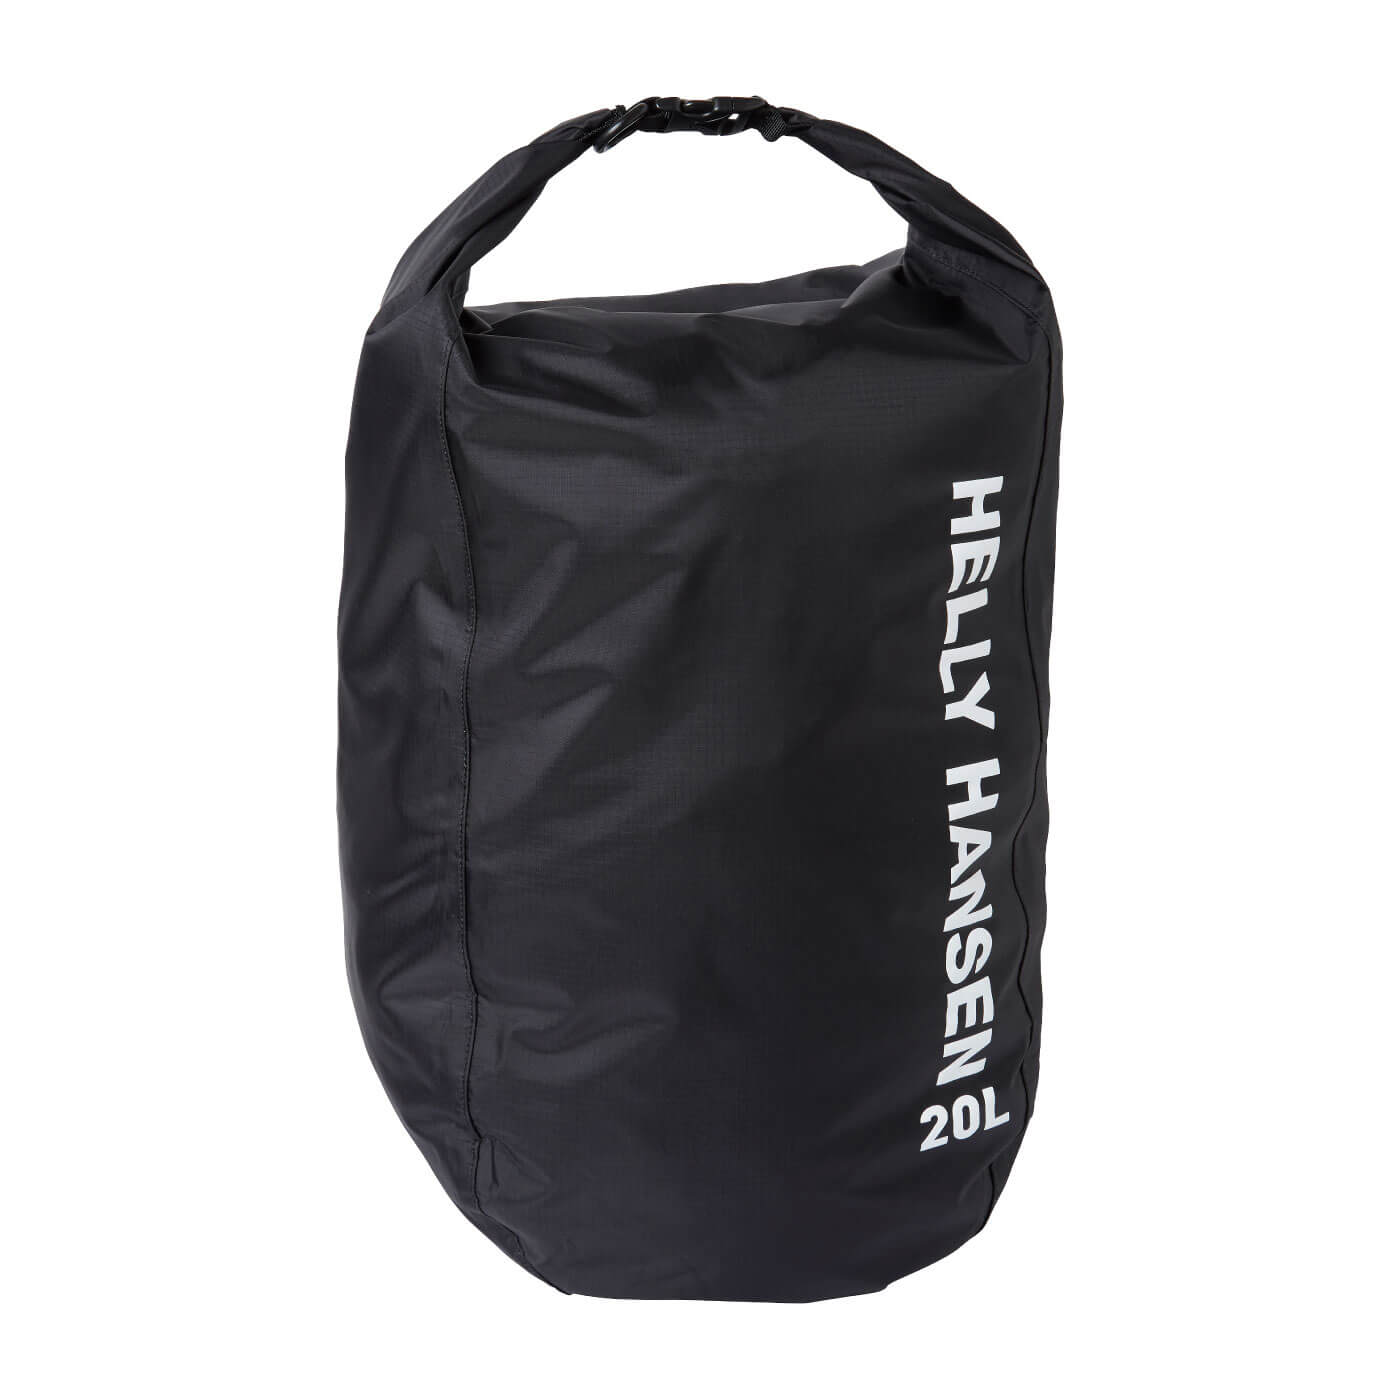 Helly Hansen HH LIGHT DRY BAG 20L